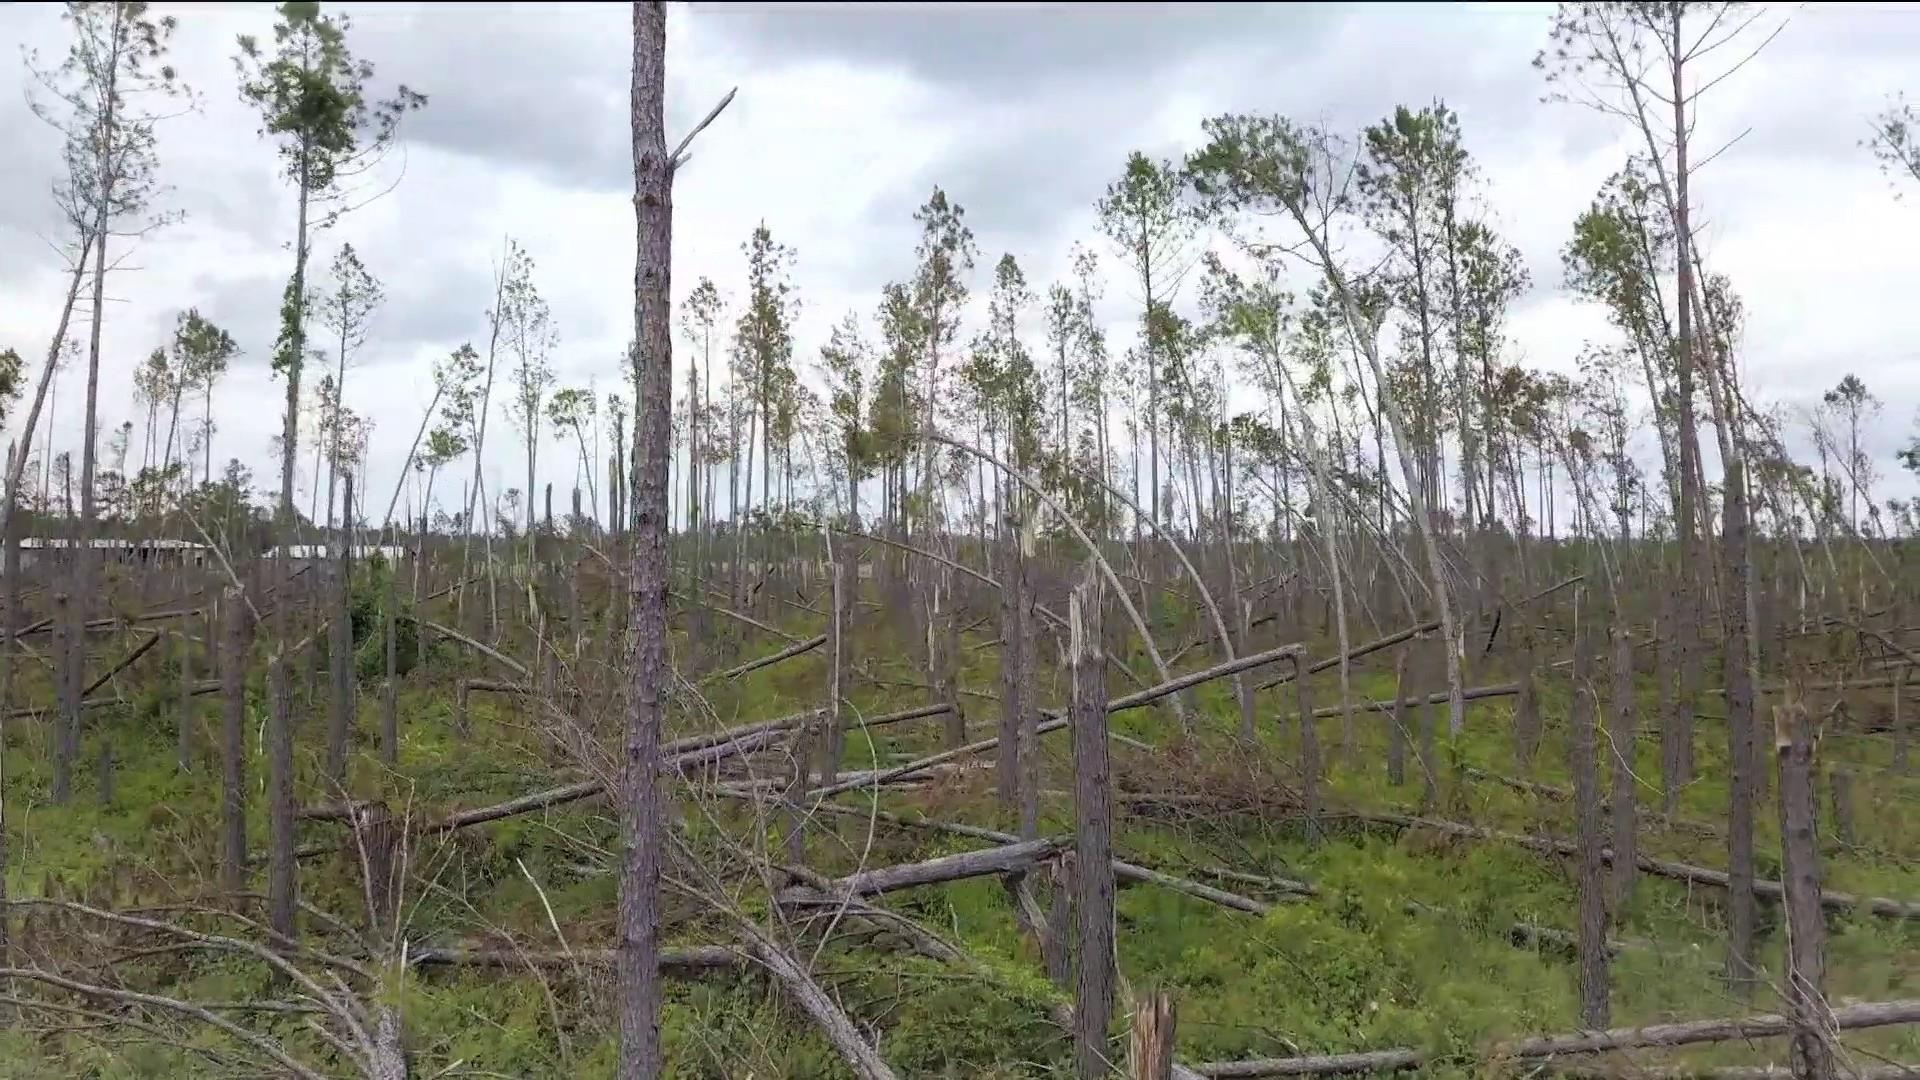 What happens to a forestry community in the aftermath of a disaster?